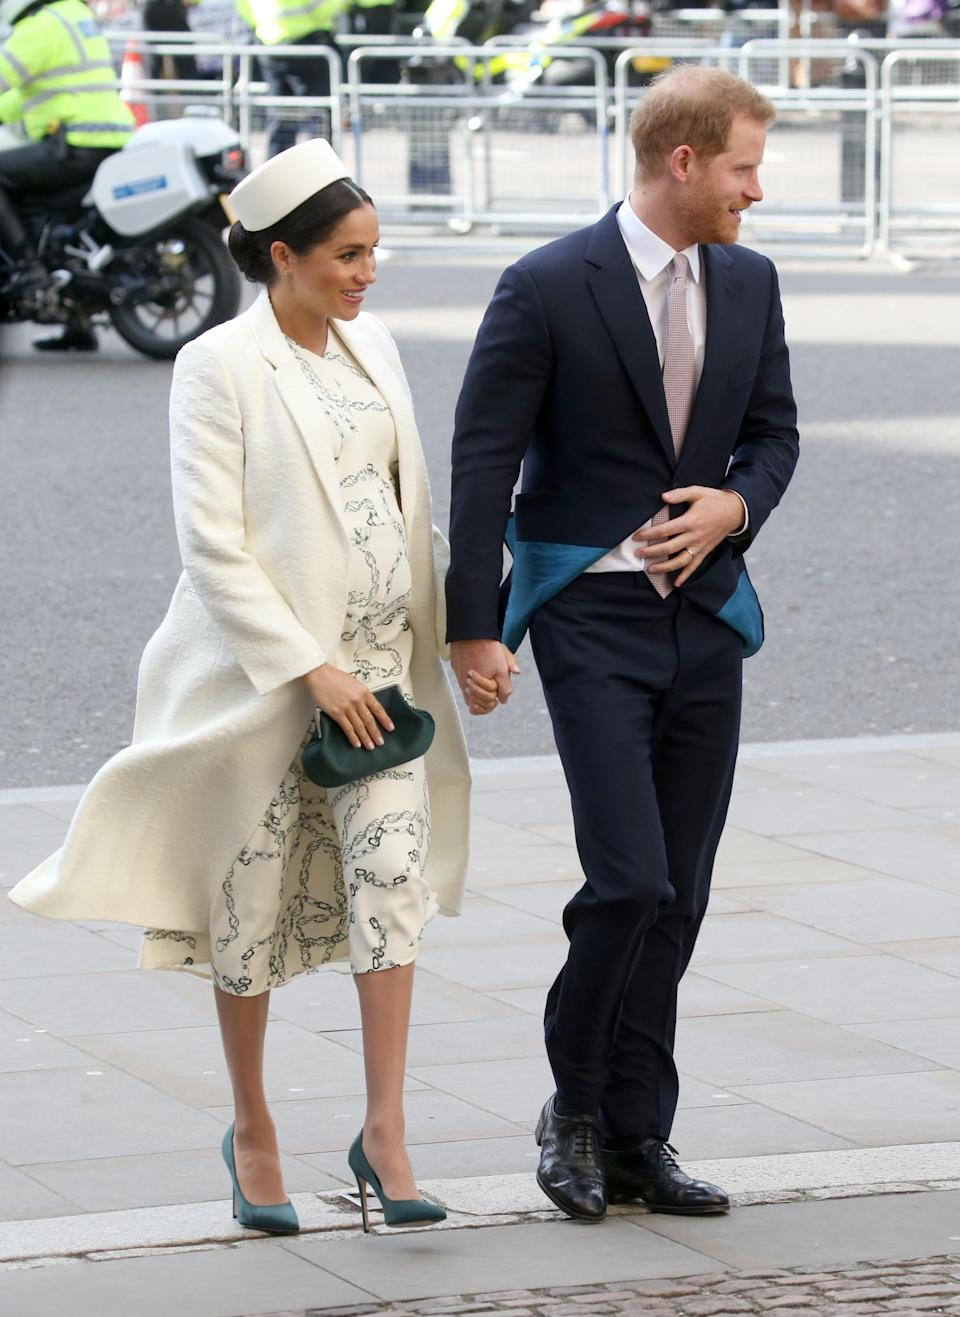 For the Commonwealth Day service, Meghan wore a cream chain print dress and coat by Victoria Beckham, with emerald green satin shoes and clutch, also by the British fashion designer [Photo: Getty]